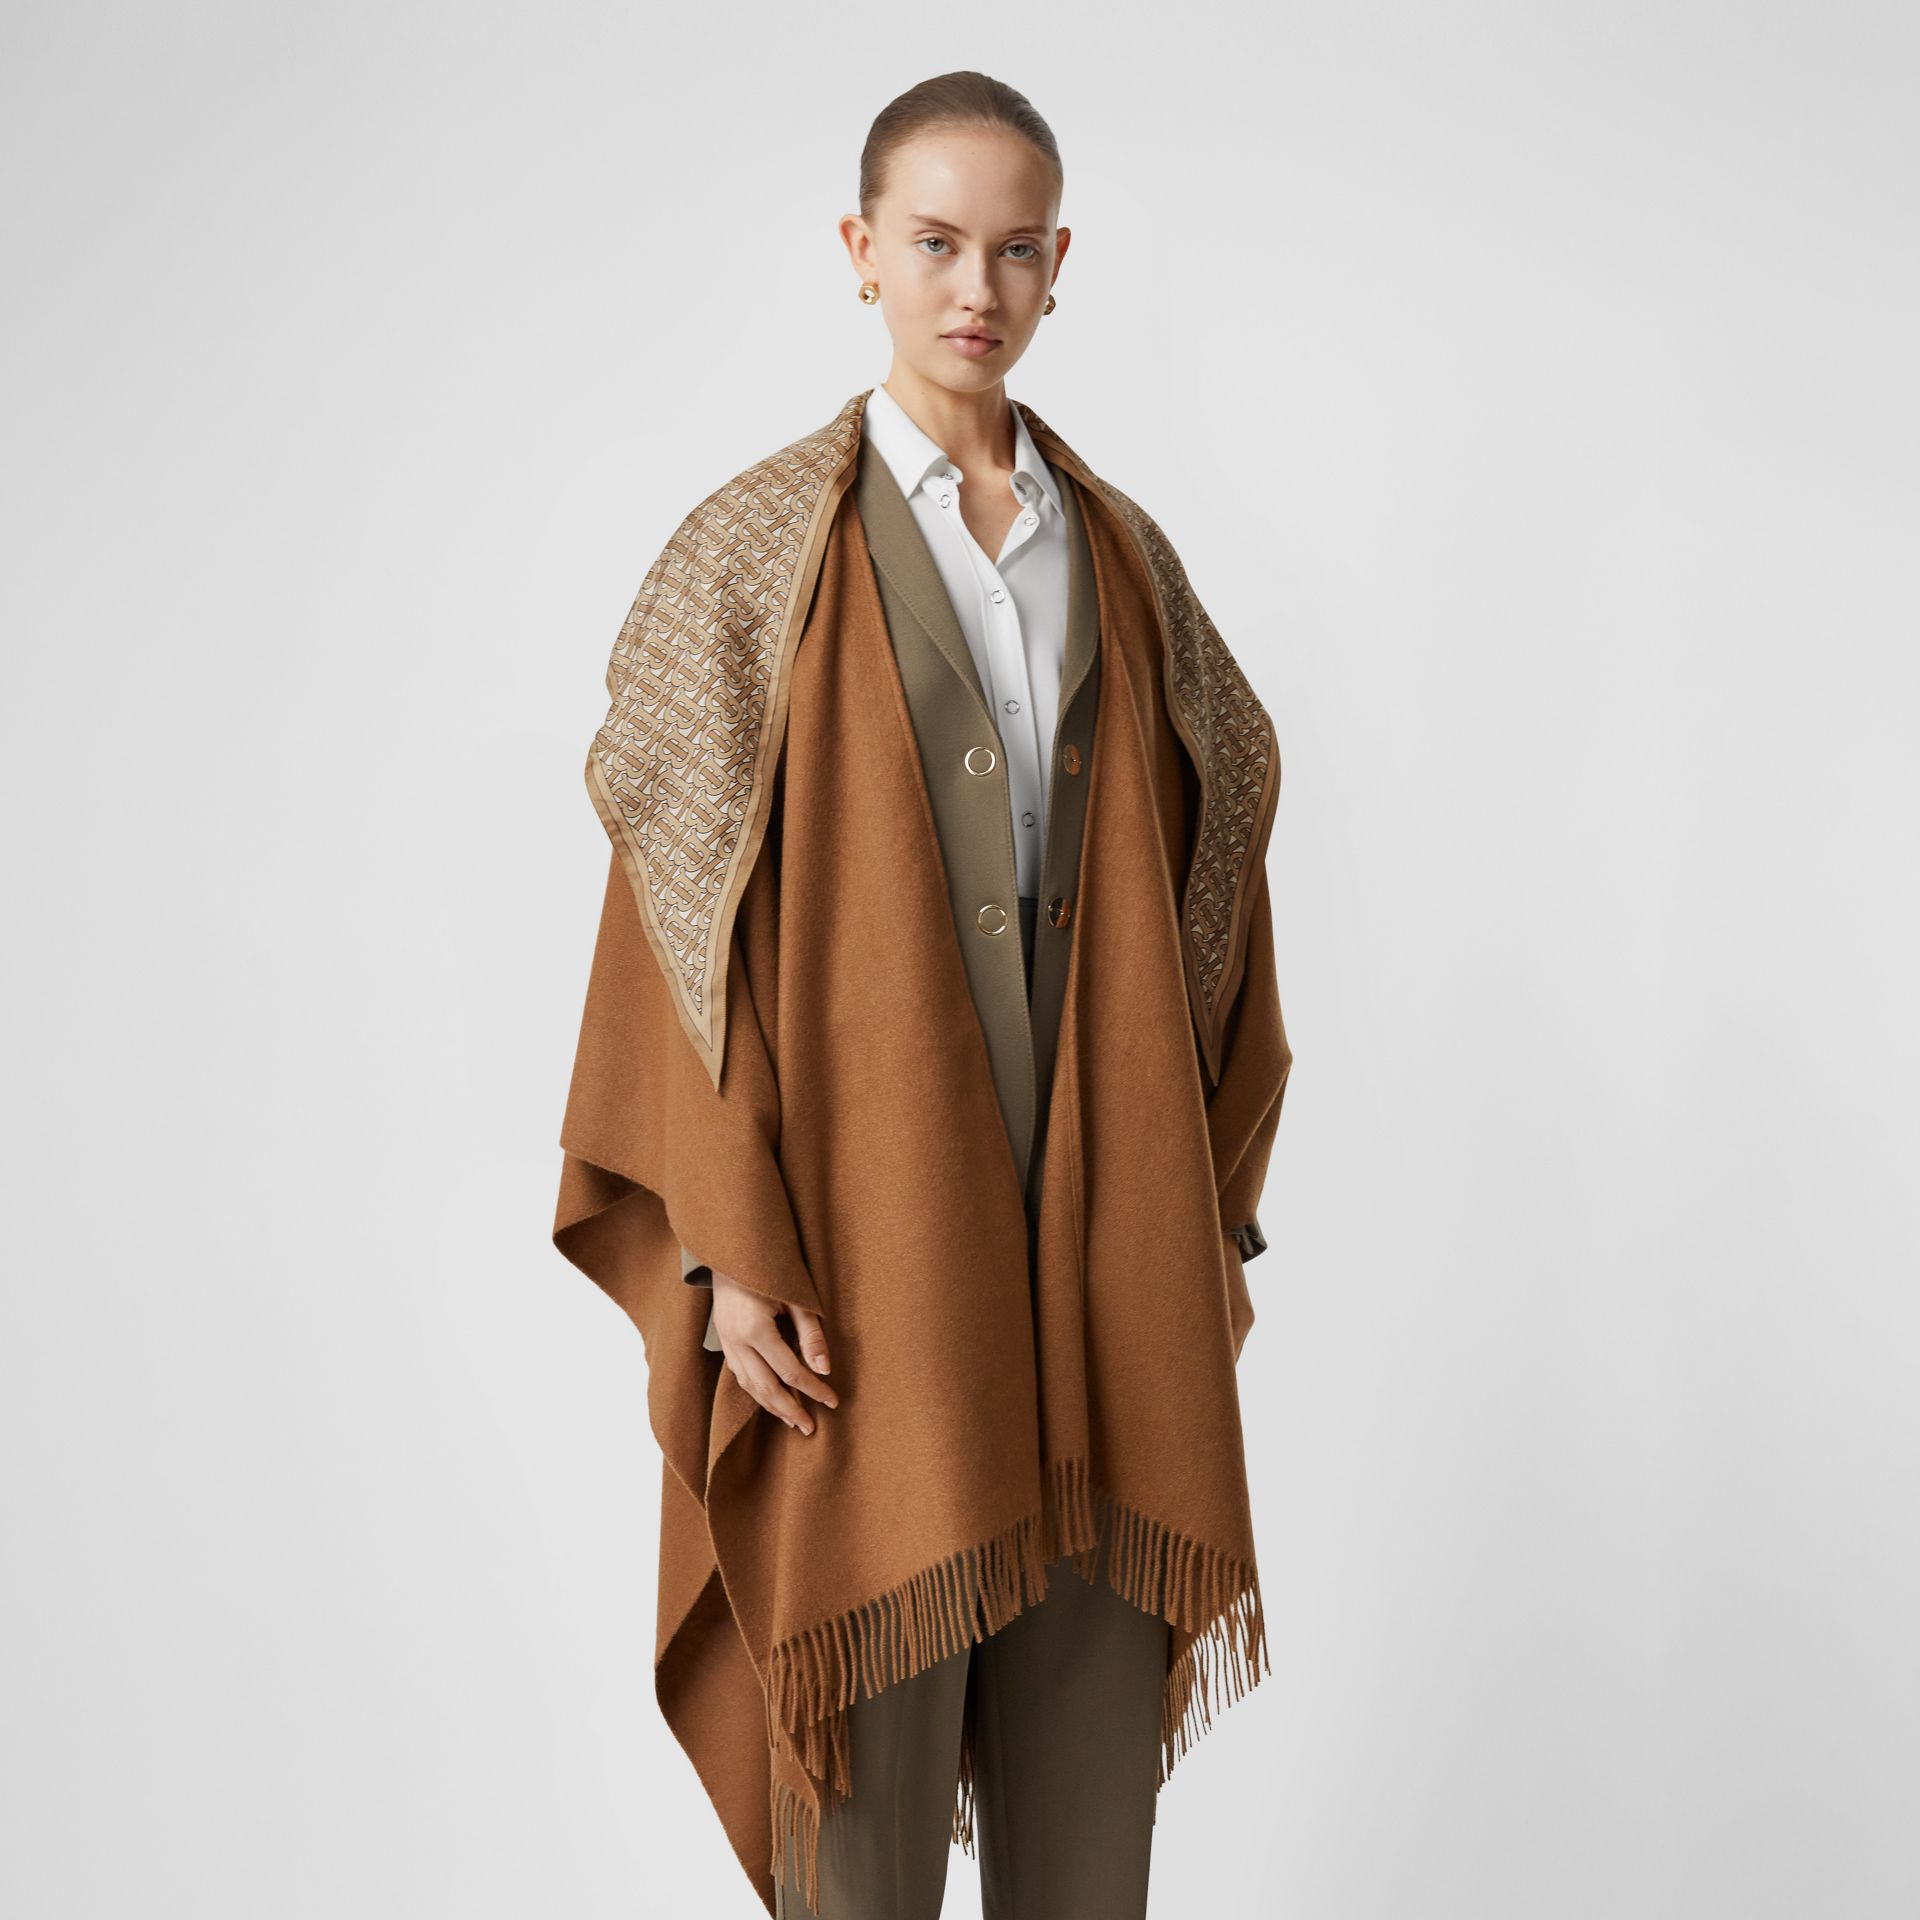 Detachable Monogram Print Scarf Cashmere Cape in Fern - Women | Burberry Hong Kong - gallery image 6